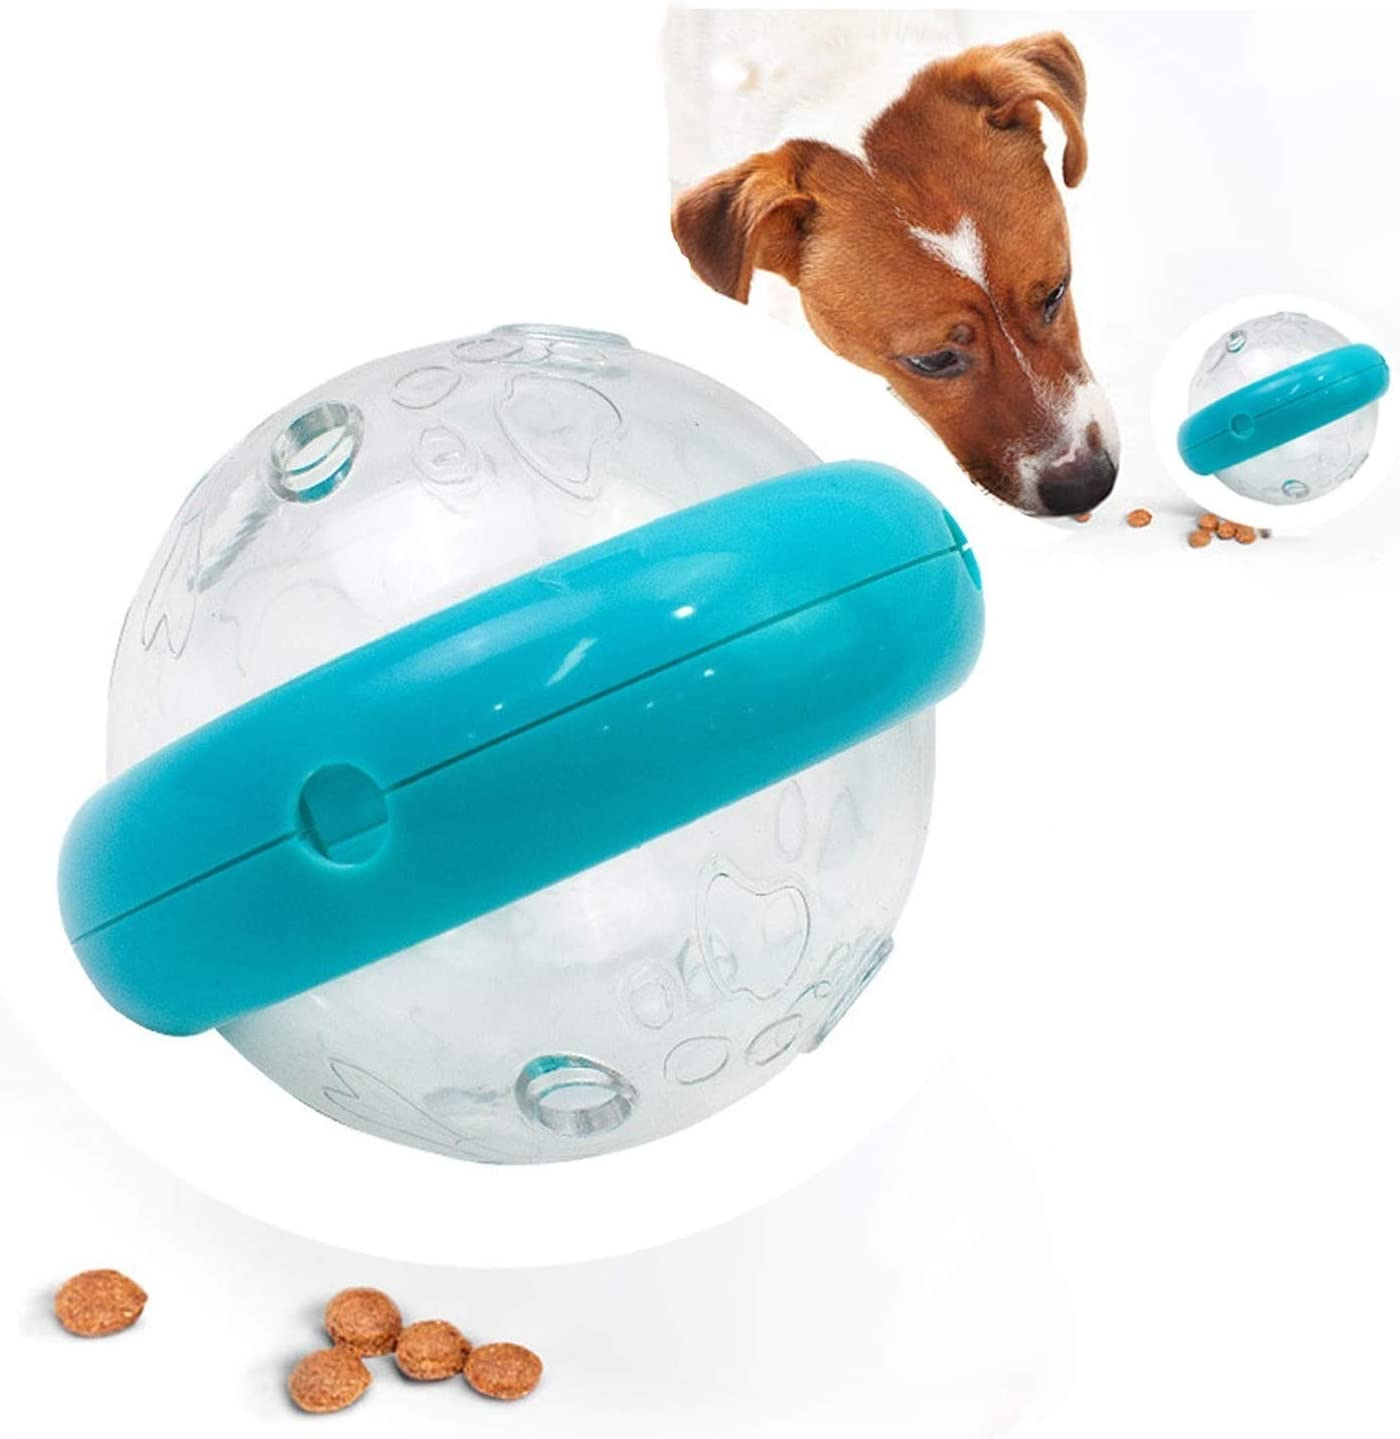 GACYSMD Tumbler Toys Interactive Food Treat Dispenser Ball,Funny Dog/CAT Puzzle Toys for PET Increases IQ Interactive and Reduce Boredom Relieve Anxiety